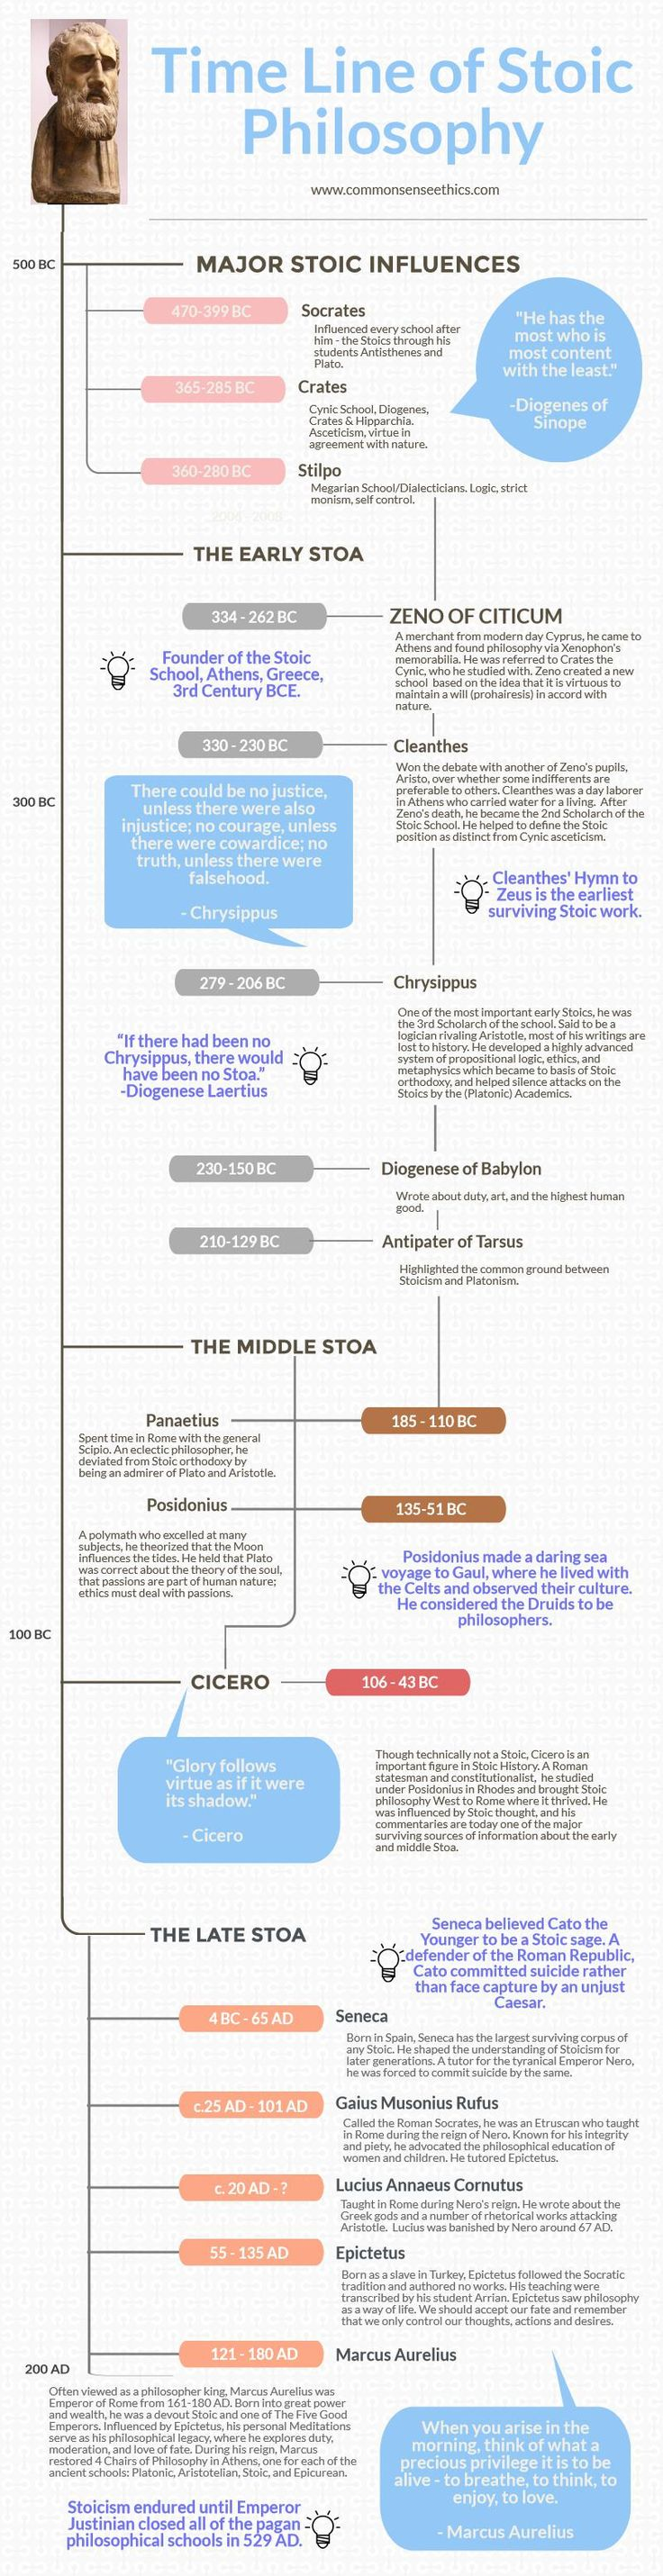 Please enjoy this timeline history of Stoic Philosophy